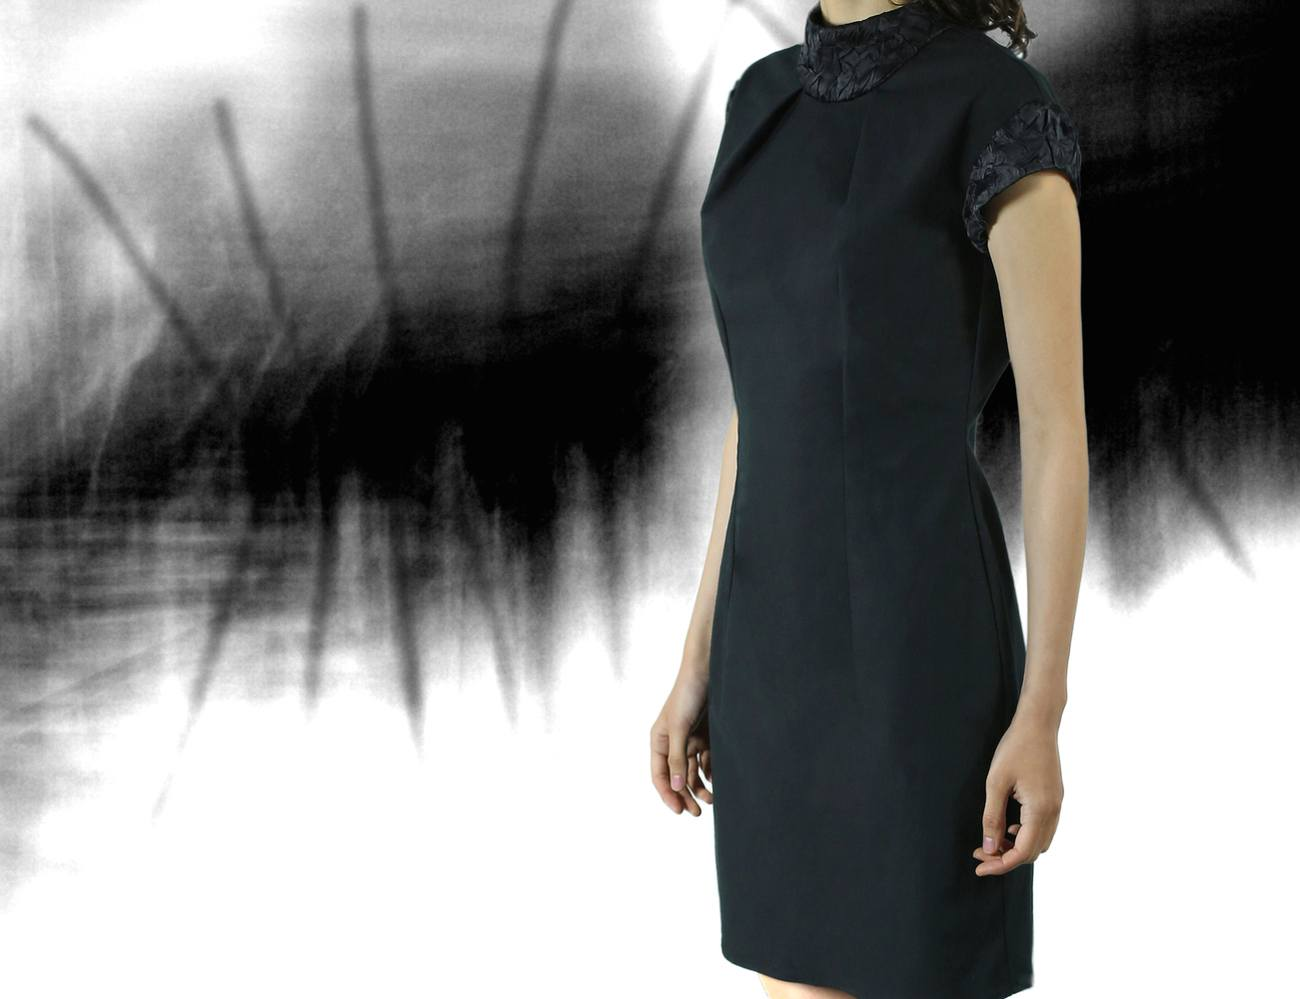 DARK MATTER Collection by SIMONE CHAP